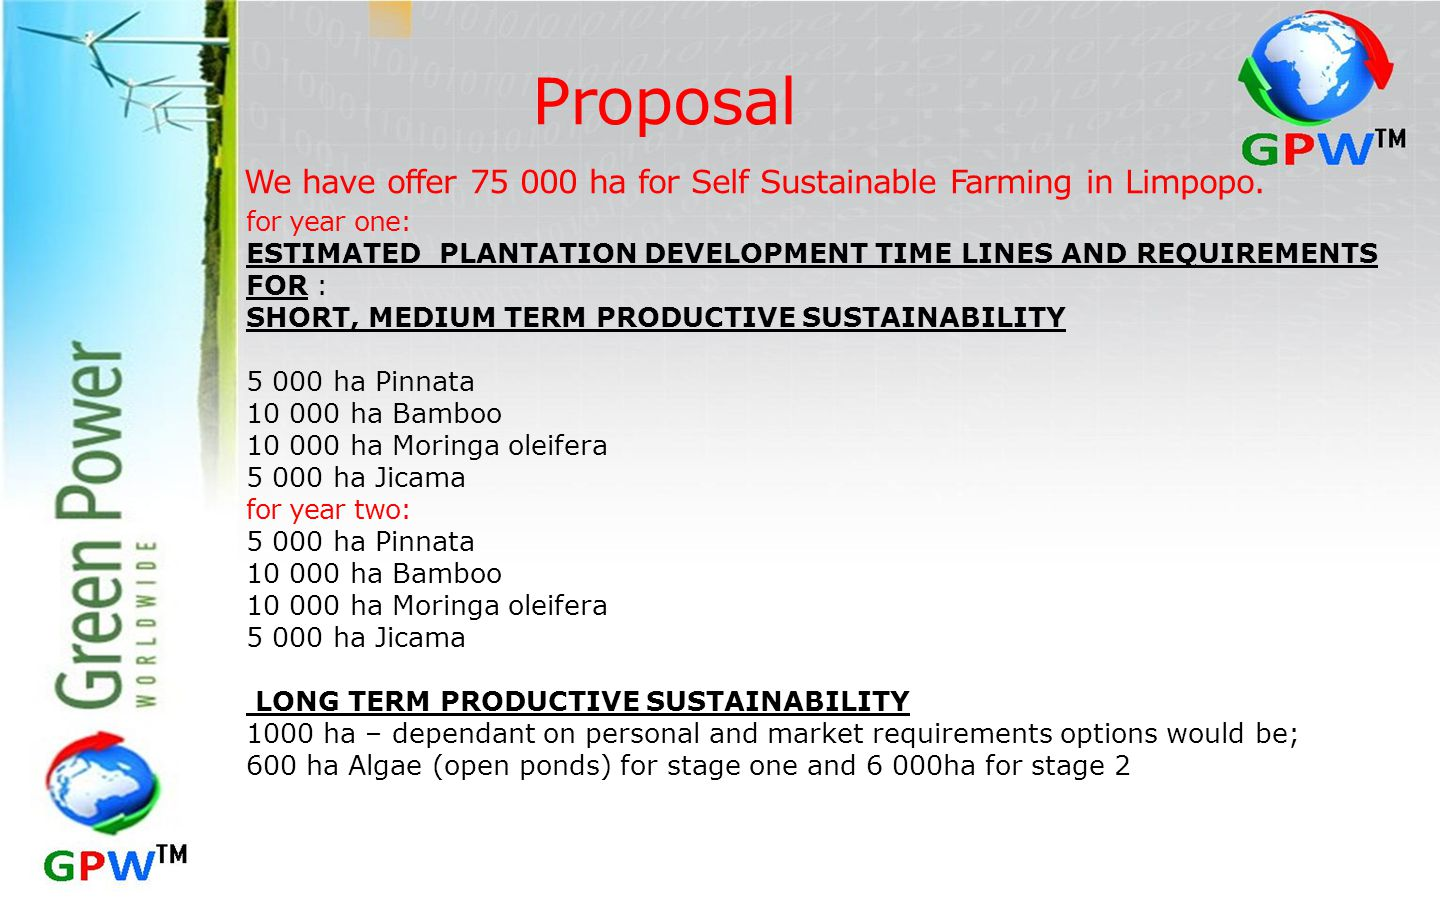 Proposal We have offer 75 000 ha for Self Sustainable Farming in Limpopo. for year one: